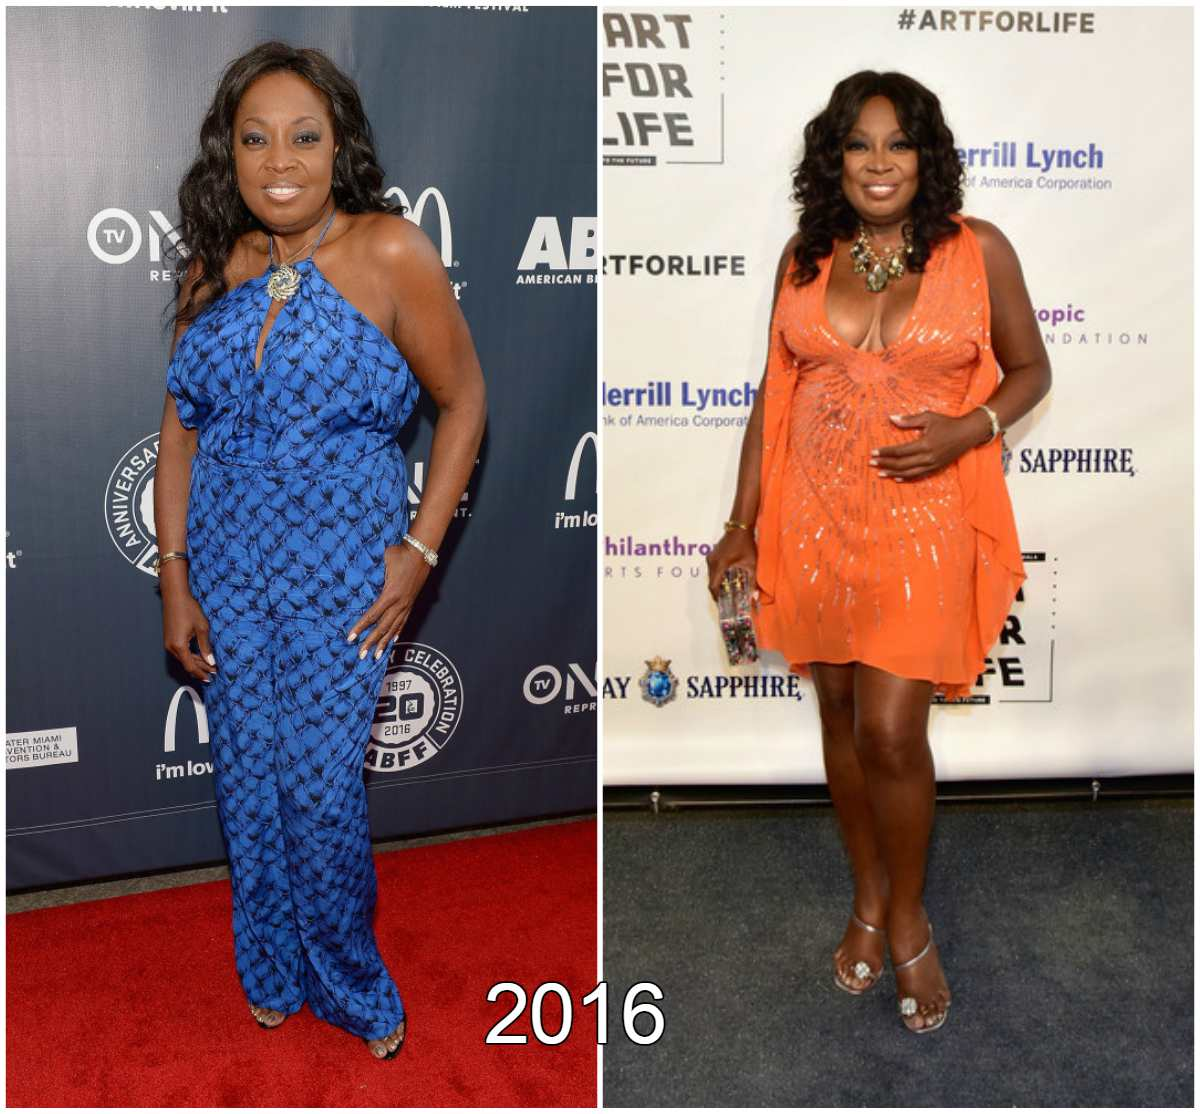 Star Jones weight changes in 2016